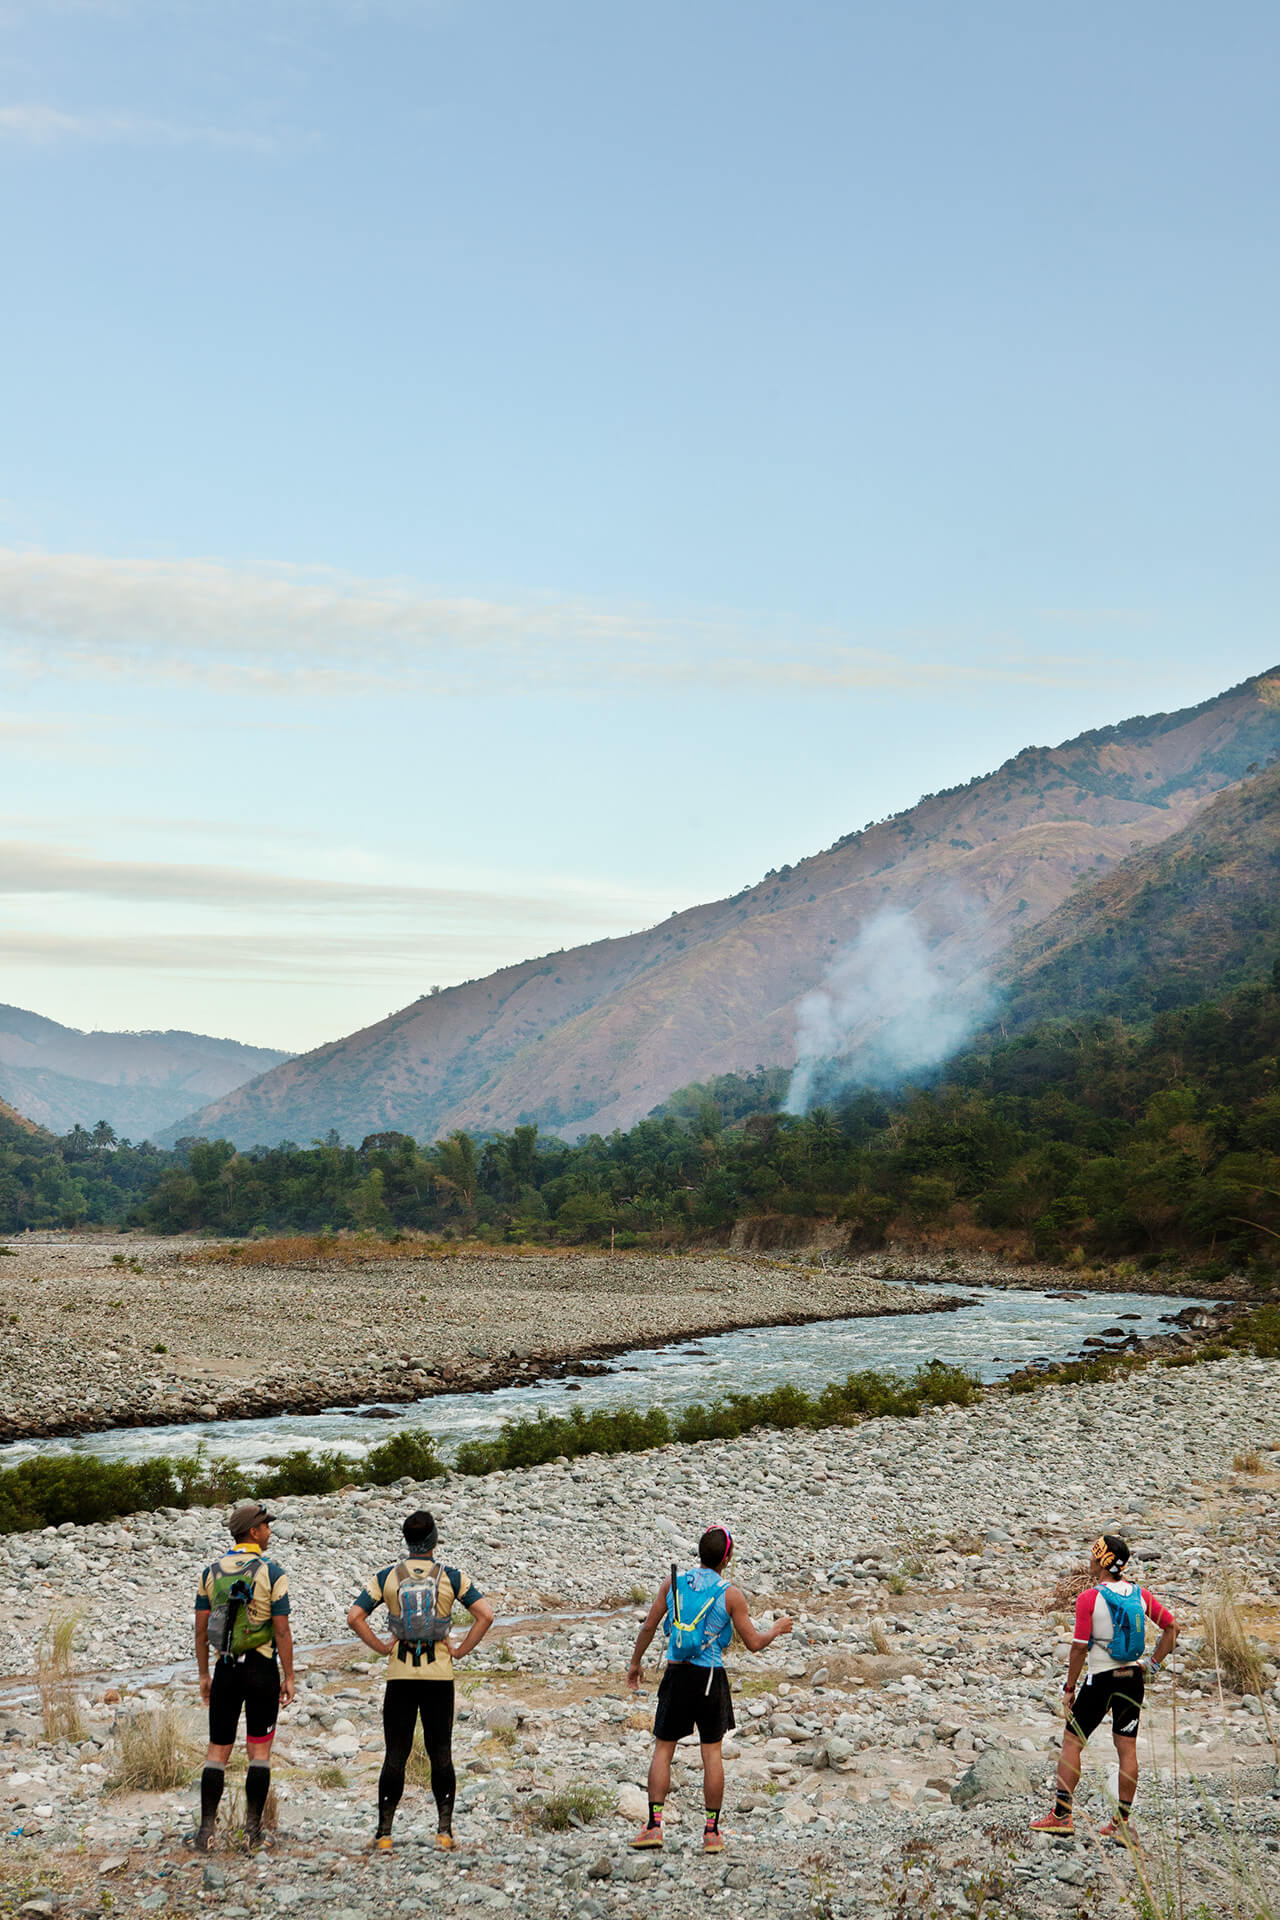 A group of mountain ultra runners taking a break to grasp the beauty of the landscape.